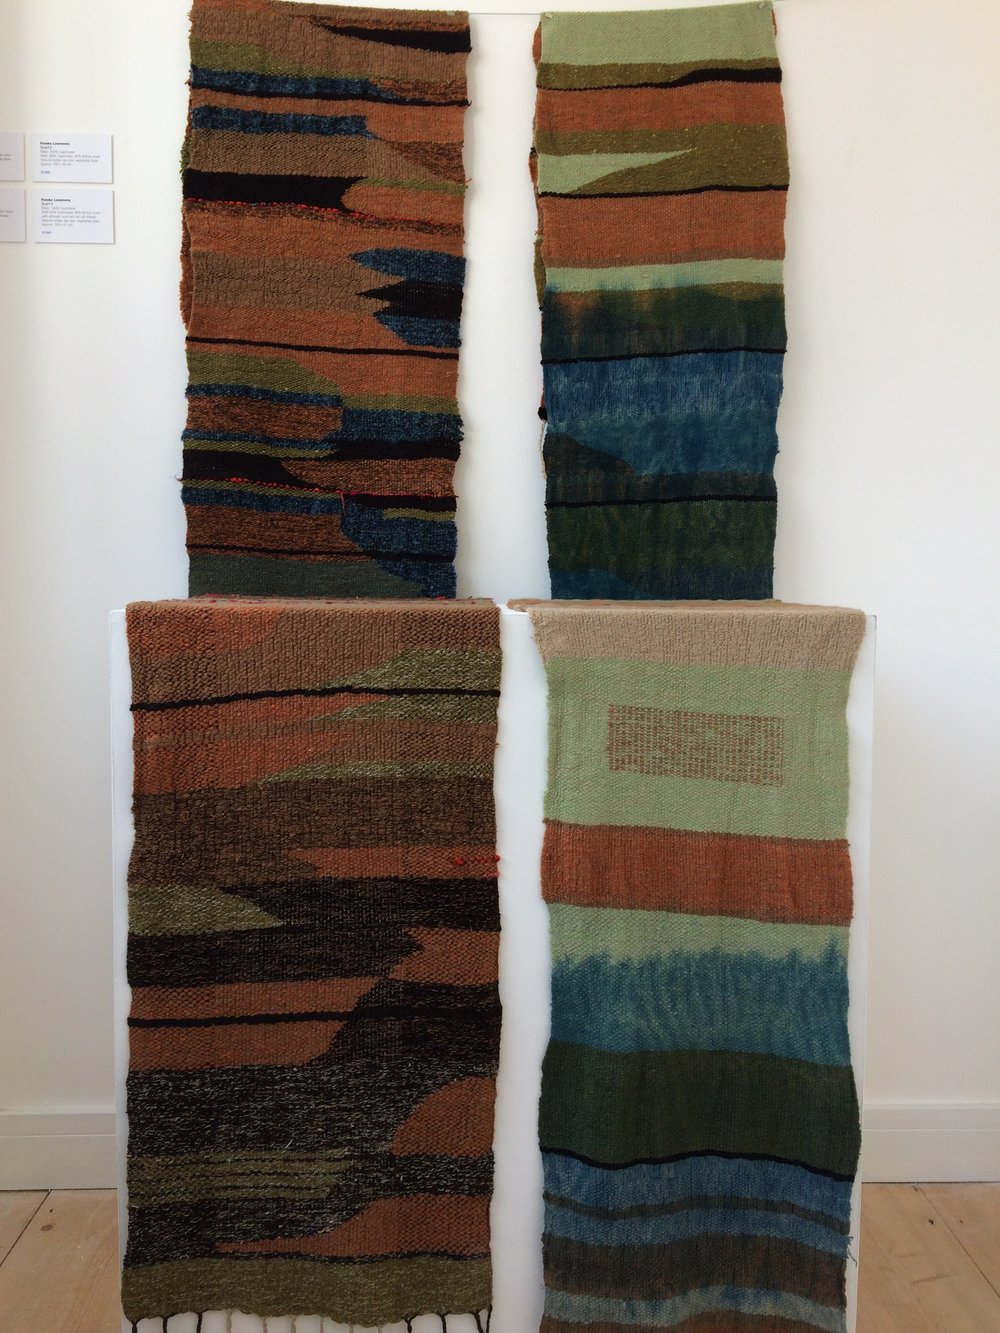 Scarves by Femke Lemmens on show Upstairs at GroundWork